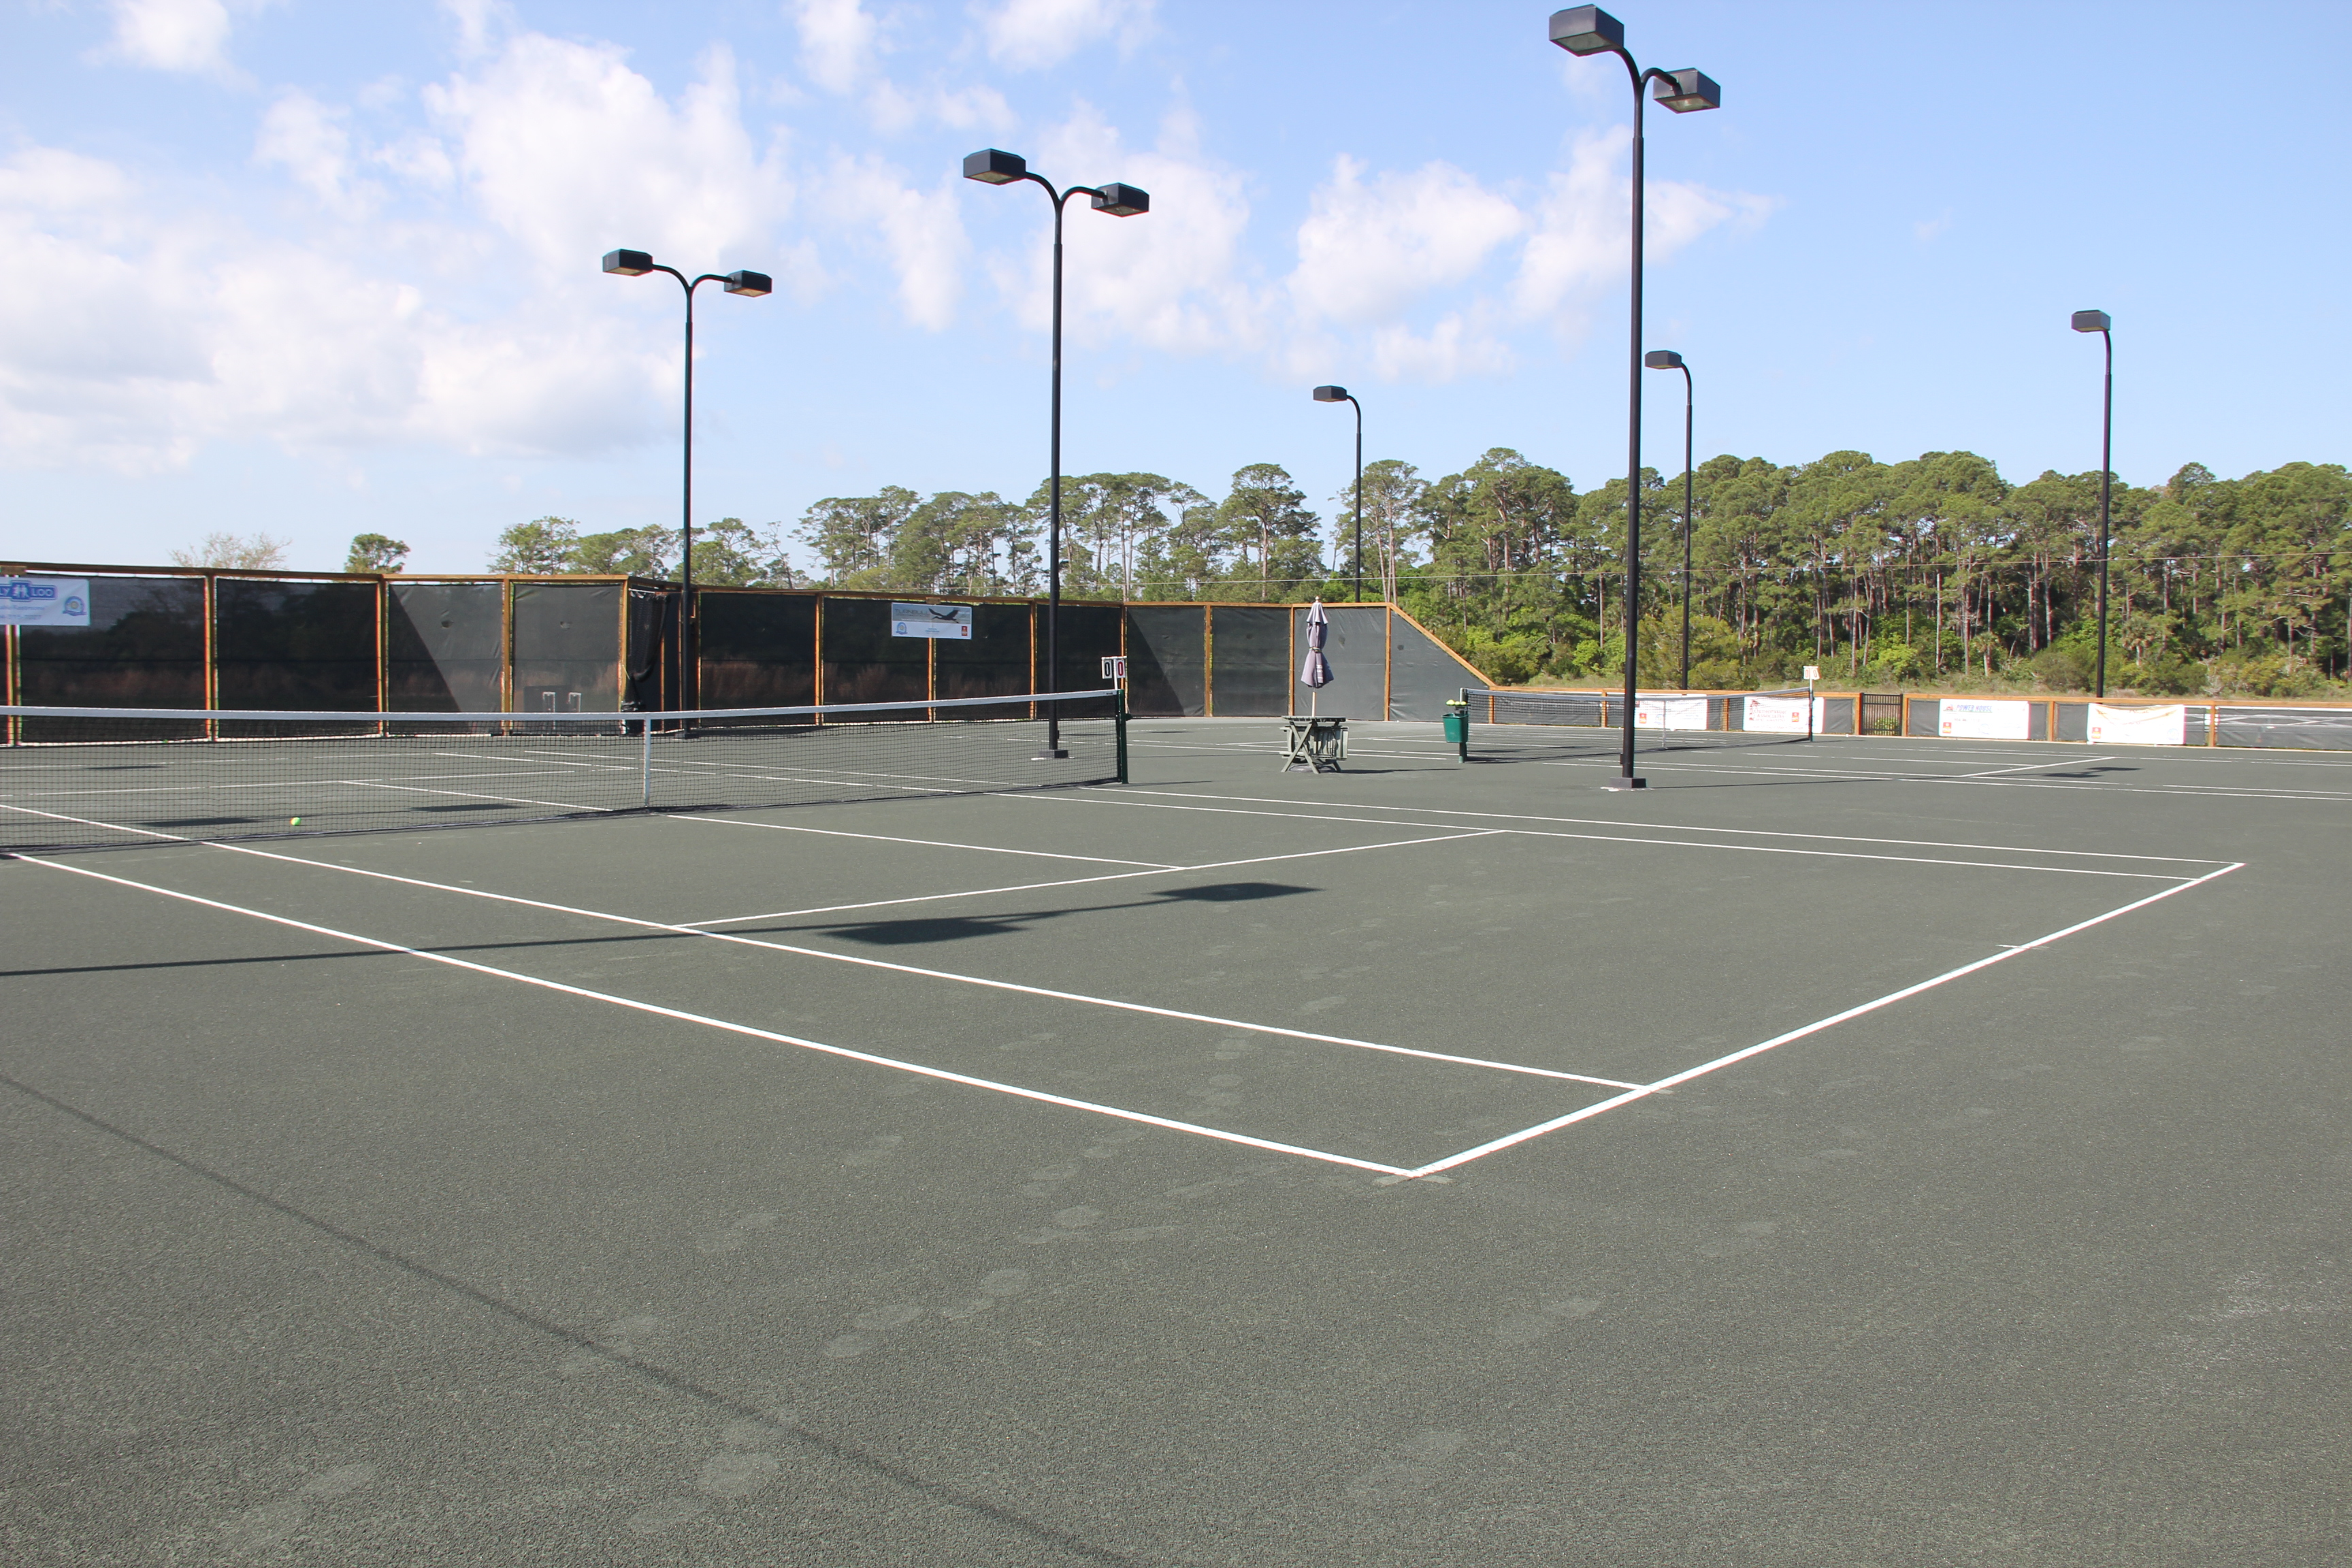 Photo of the new Harbour Island Tennis Court, showing the nets, lights, and fencing enclosure in the background with trees behind it.